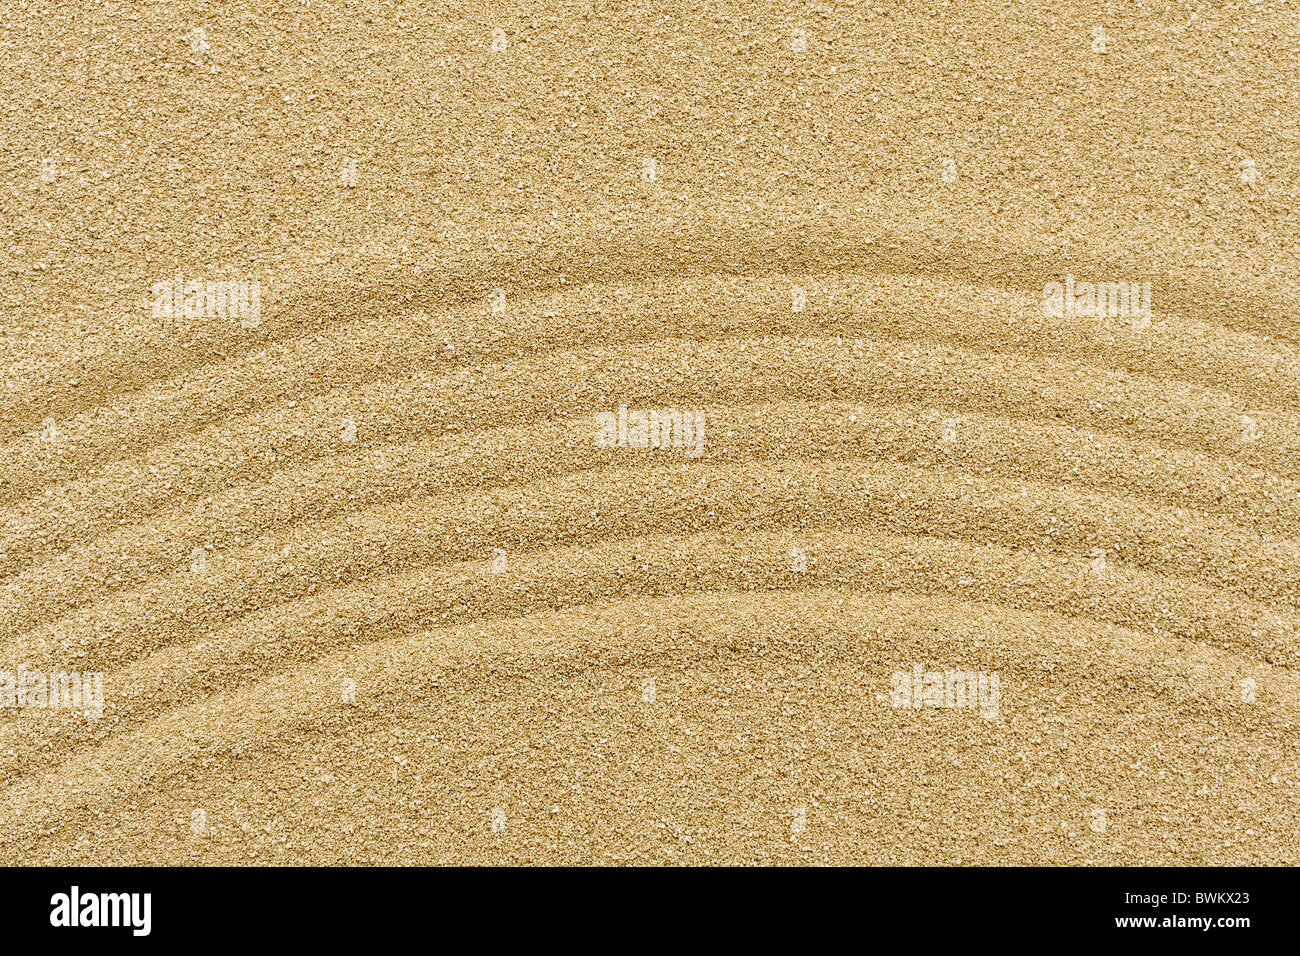 raked sand - zen rock garden - japan zen spirit inspired arrangement - Stock Image